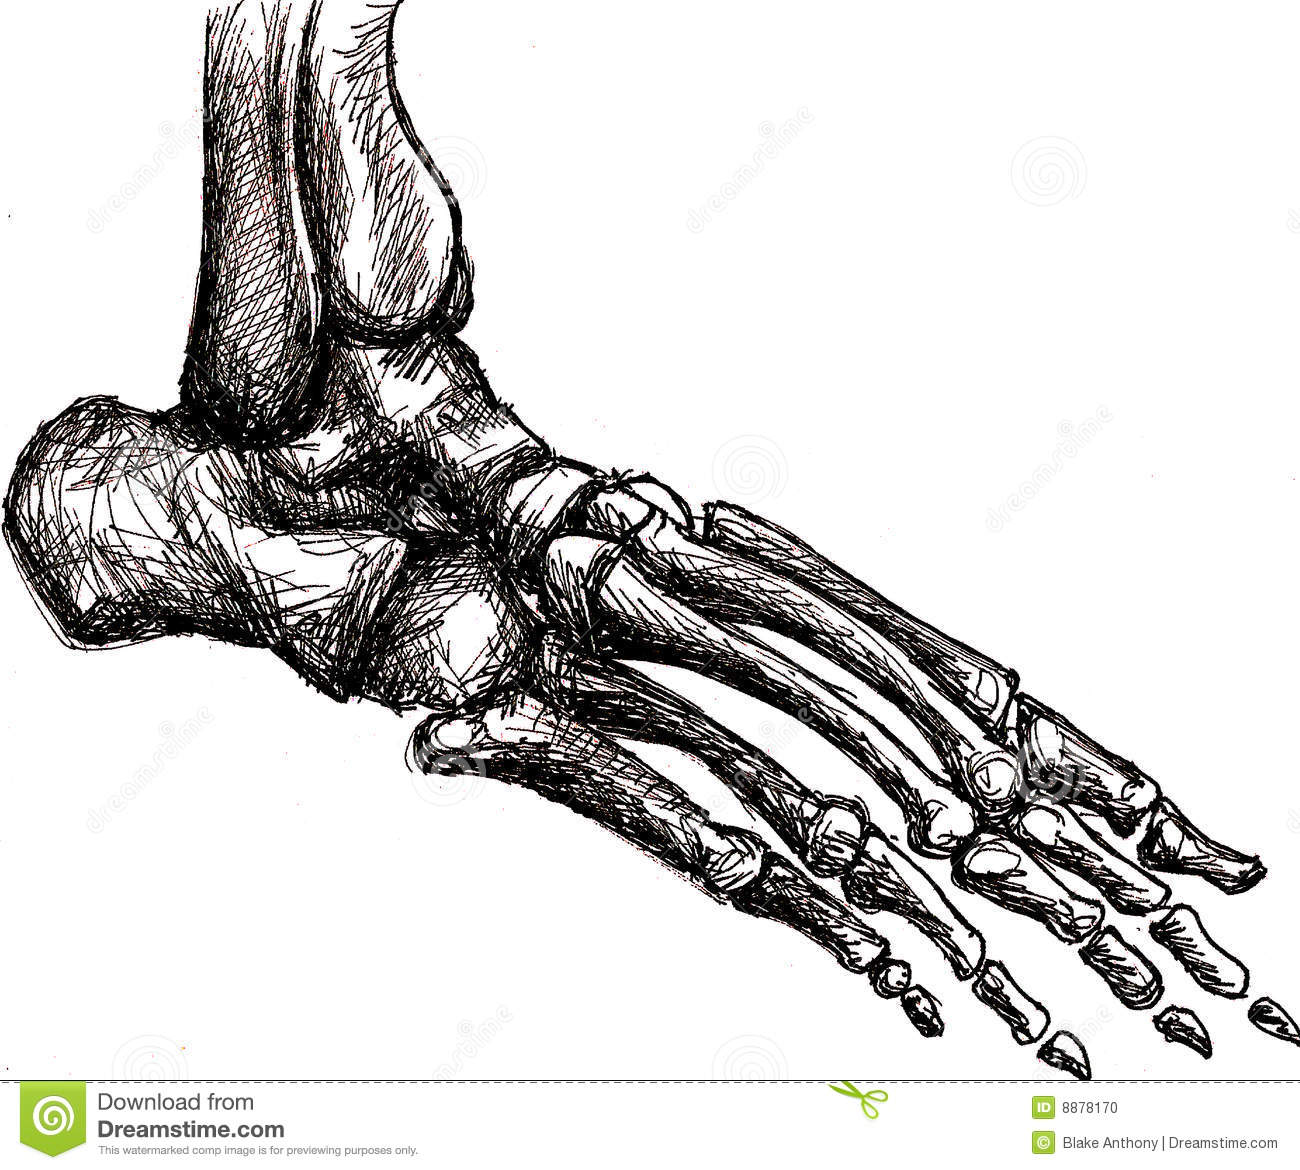 Foot skeleton anatomy stock illustration. Illustration of white ...